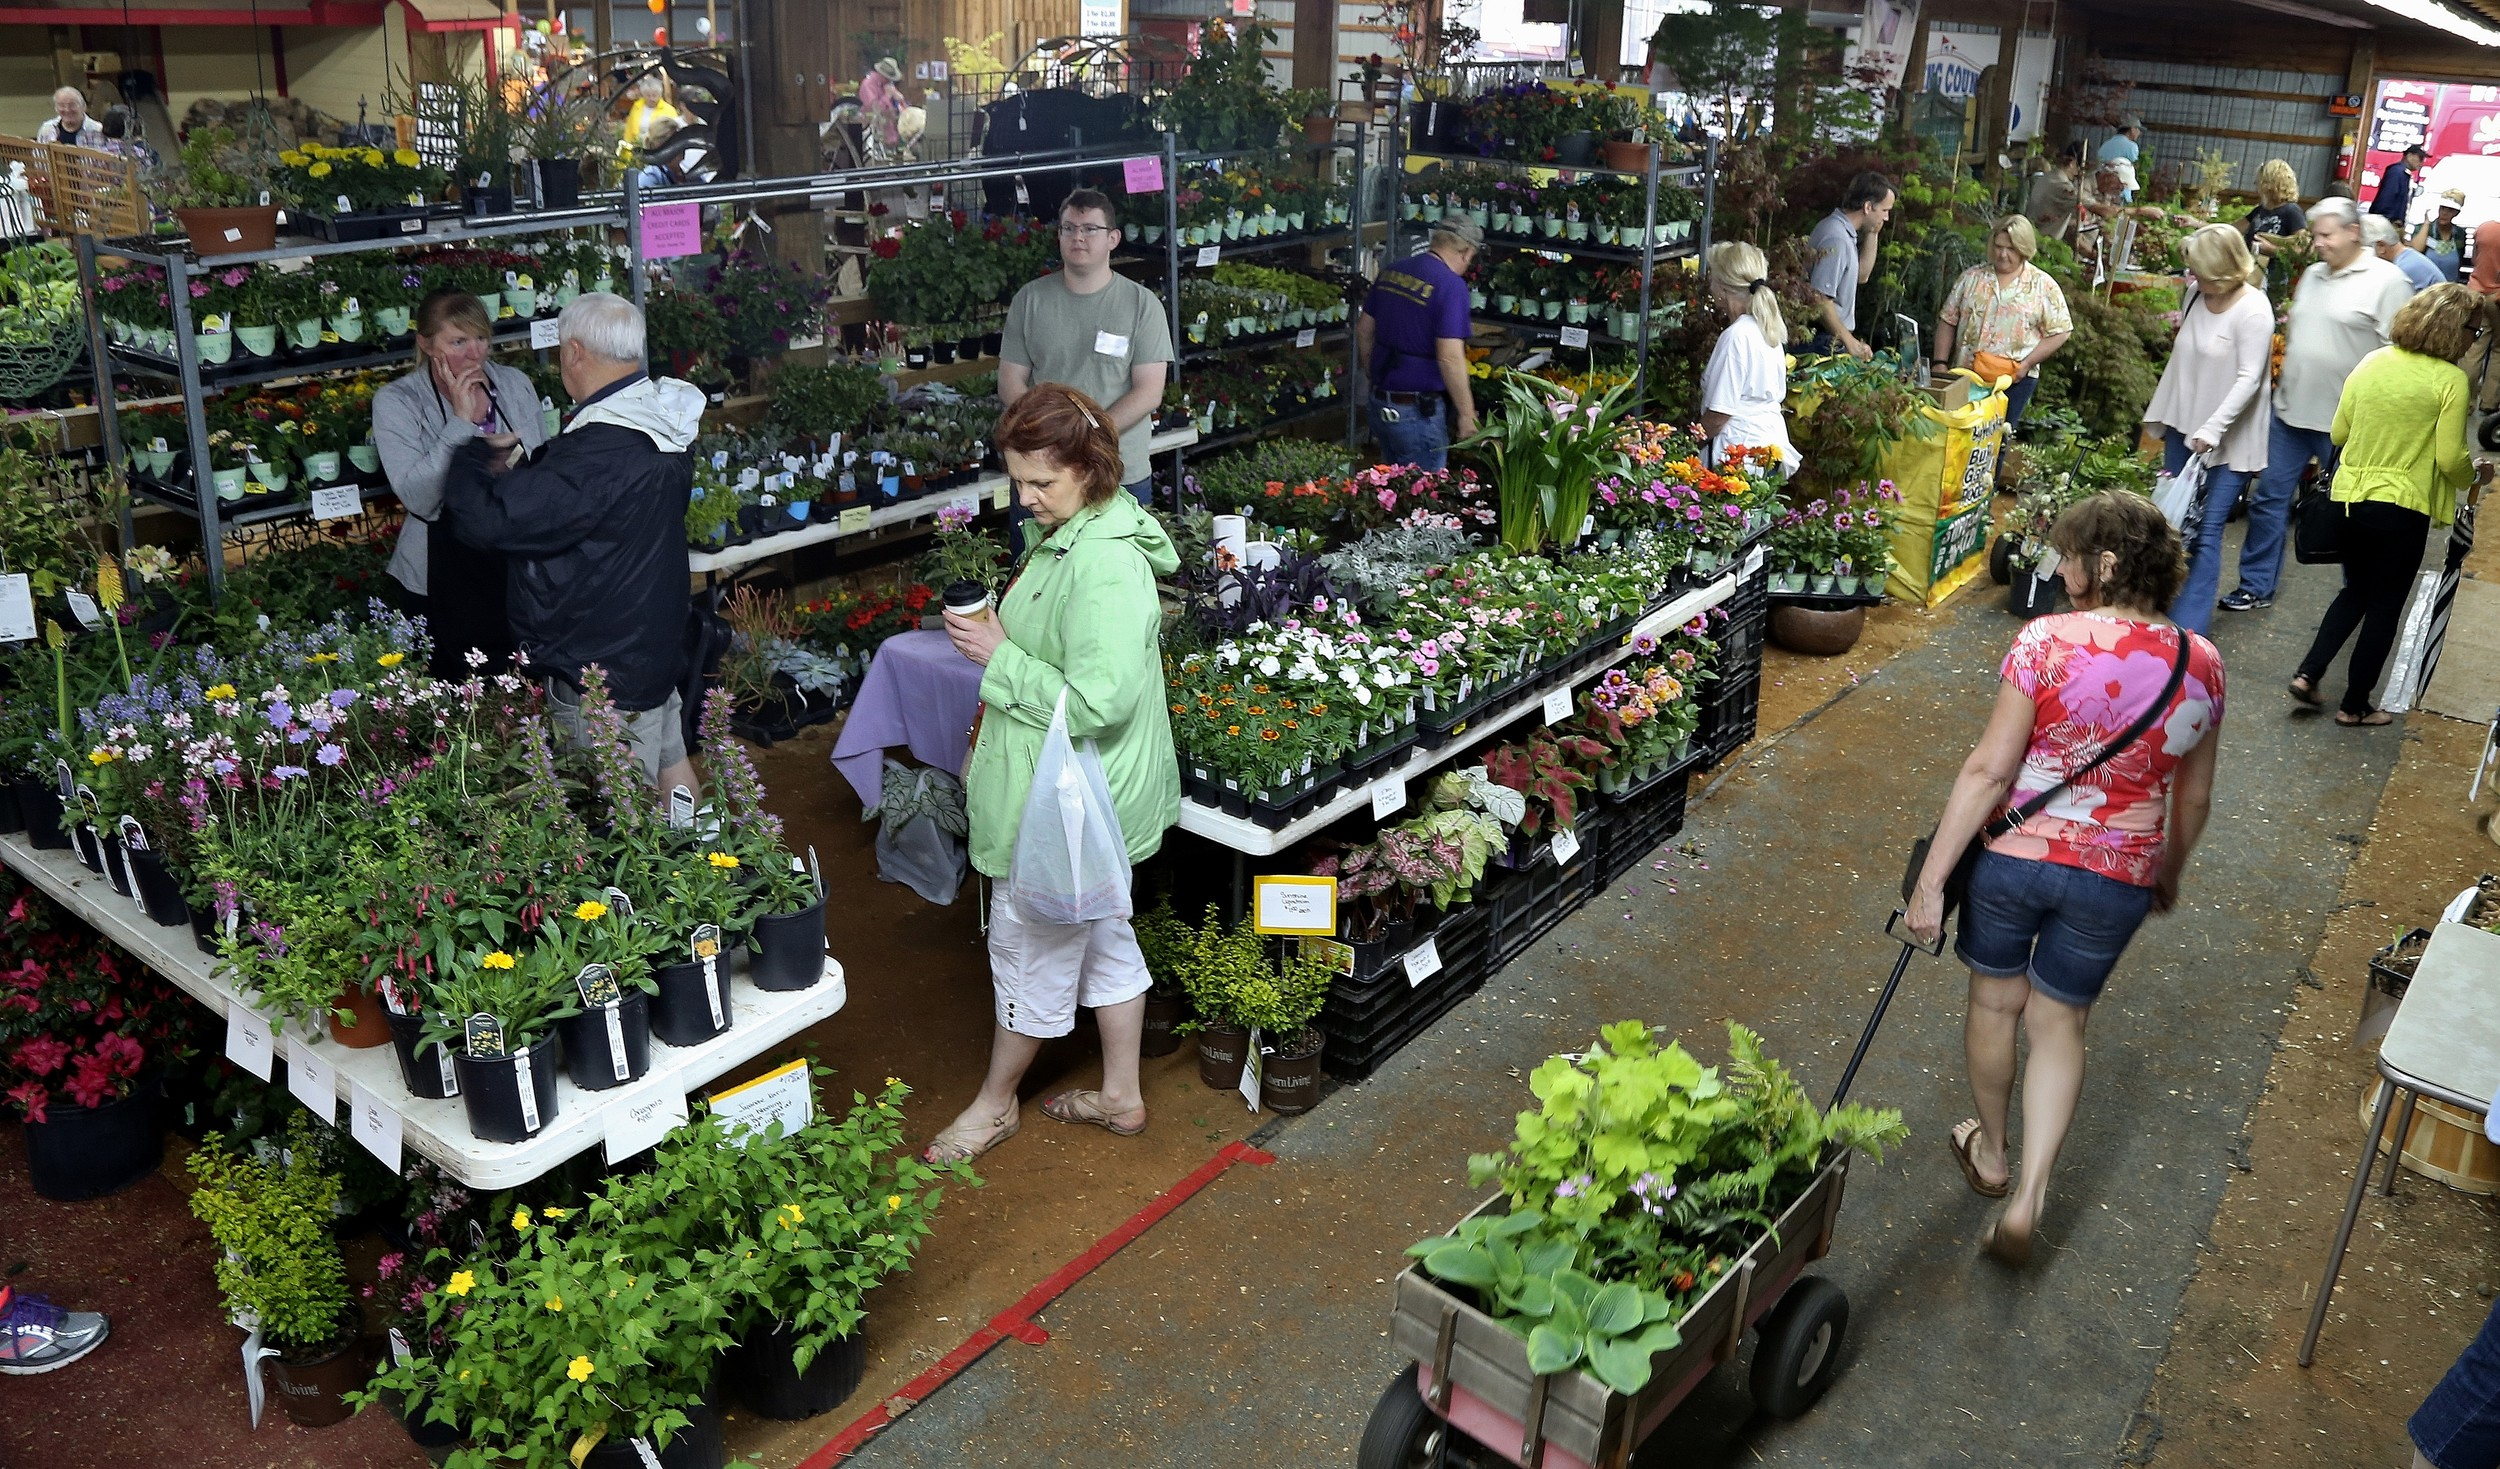 Forsyth County Master Gardeners' 18th Annual Plant & Garden Event